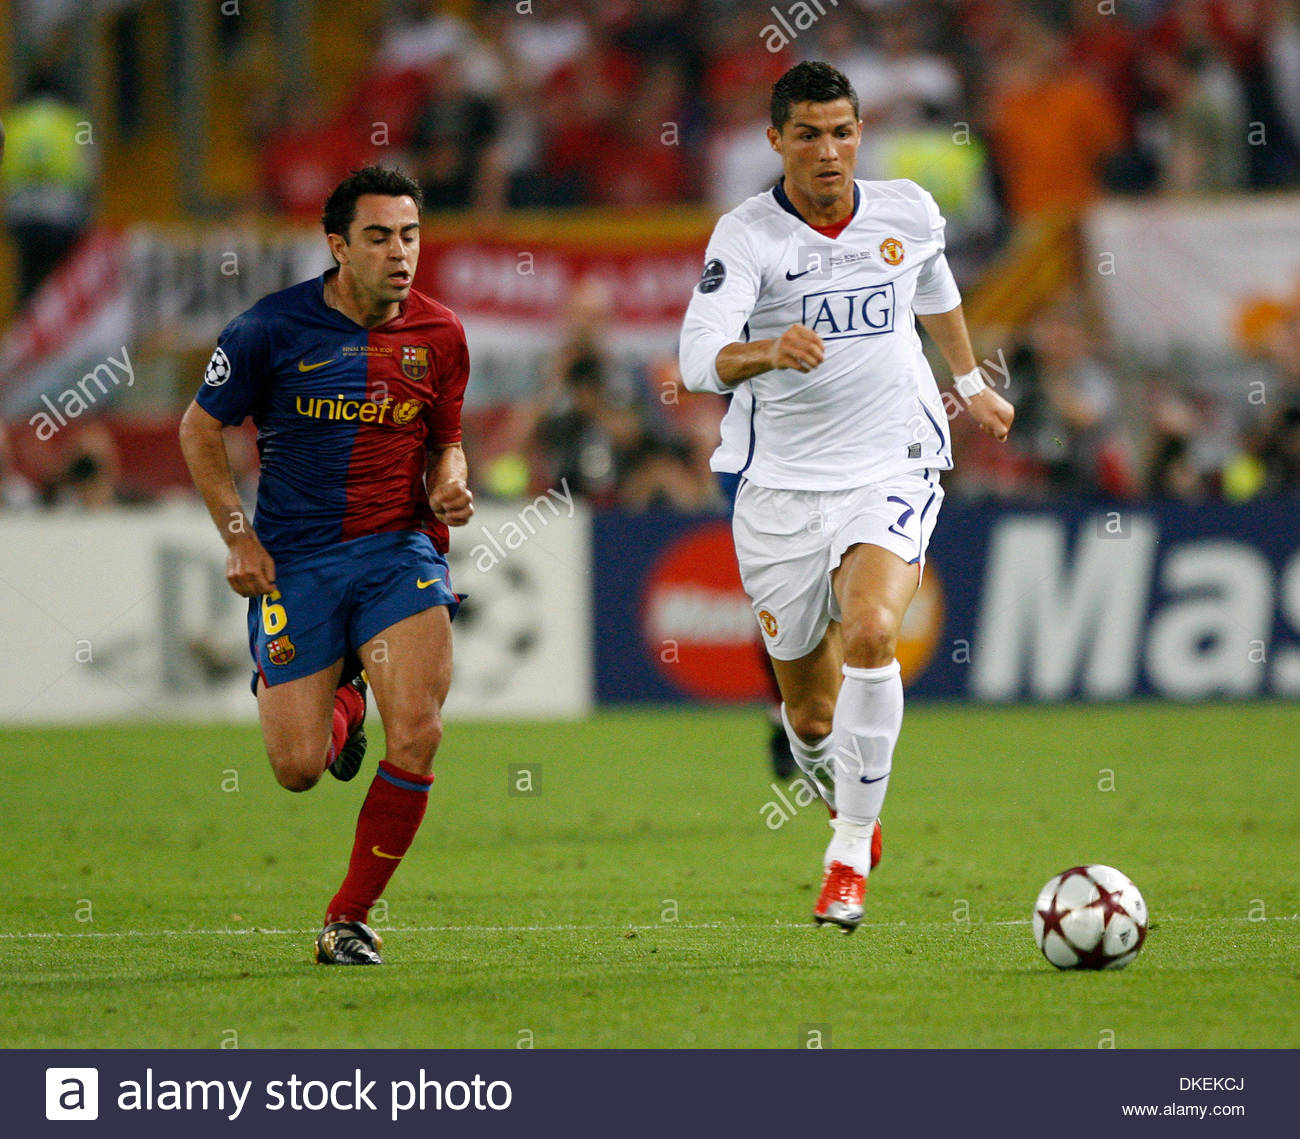 Barcelona Vs Real Madrid Or Liverpool Vs Manchester United: Xavi Champions League Stock Photos & Xavi Champions League